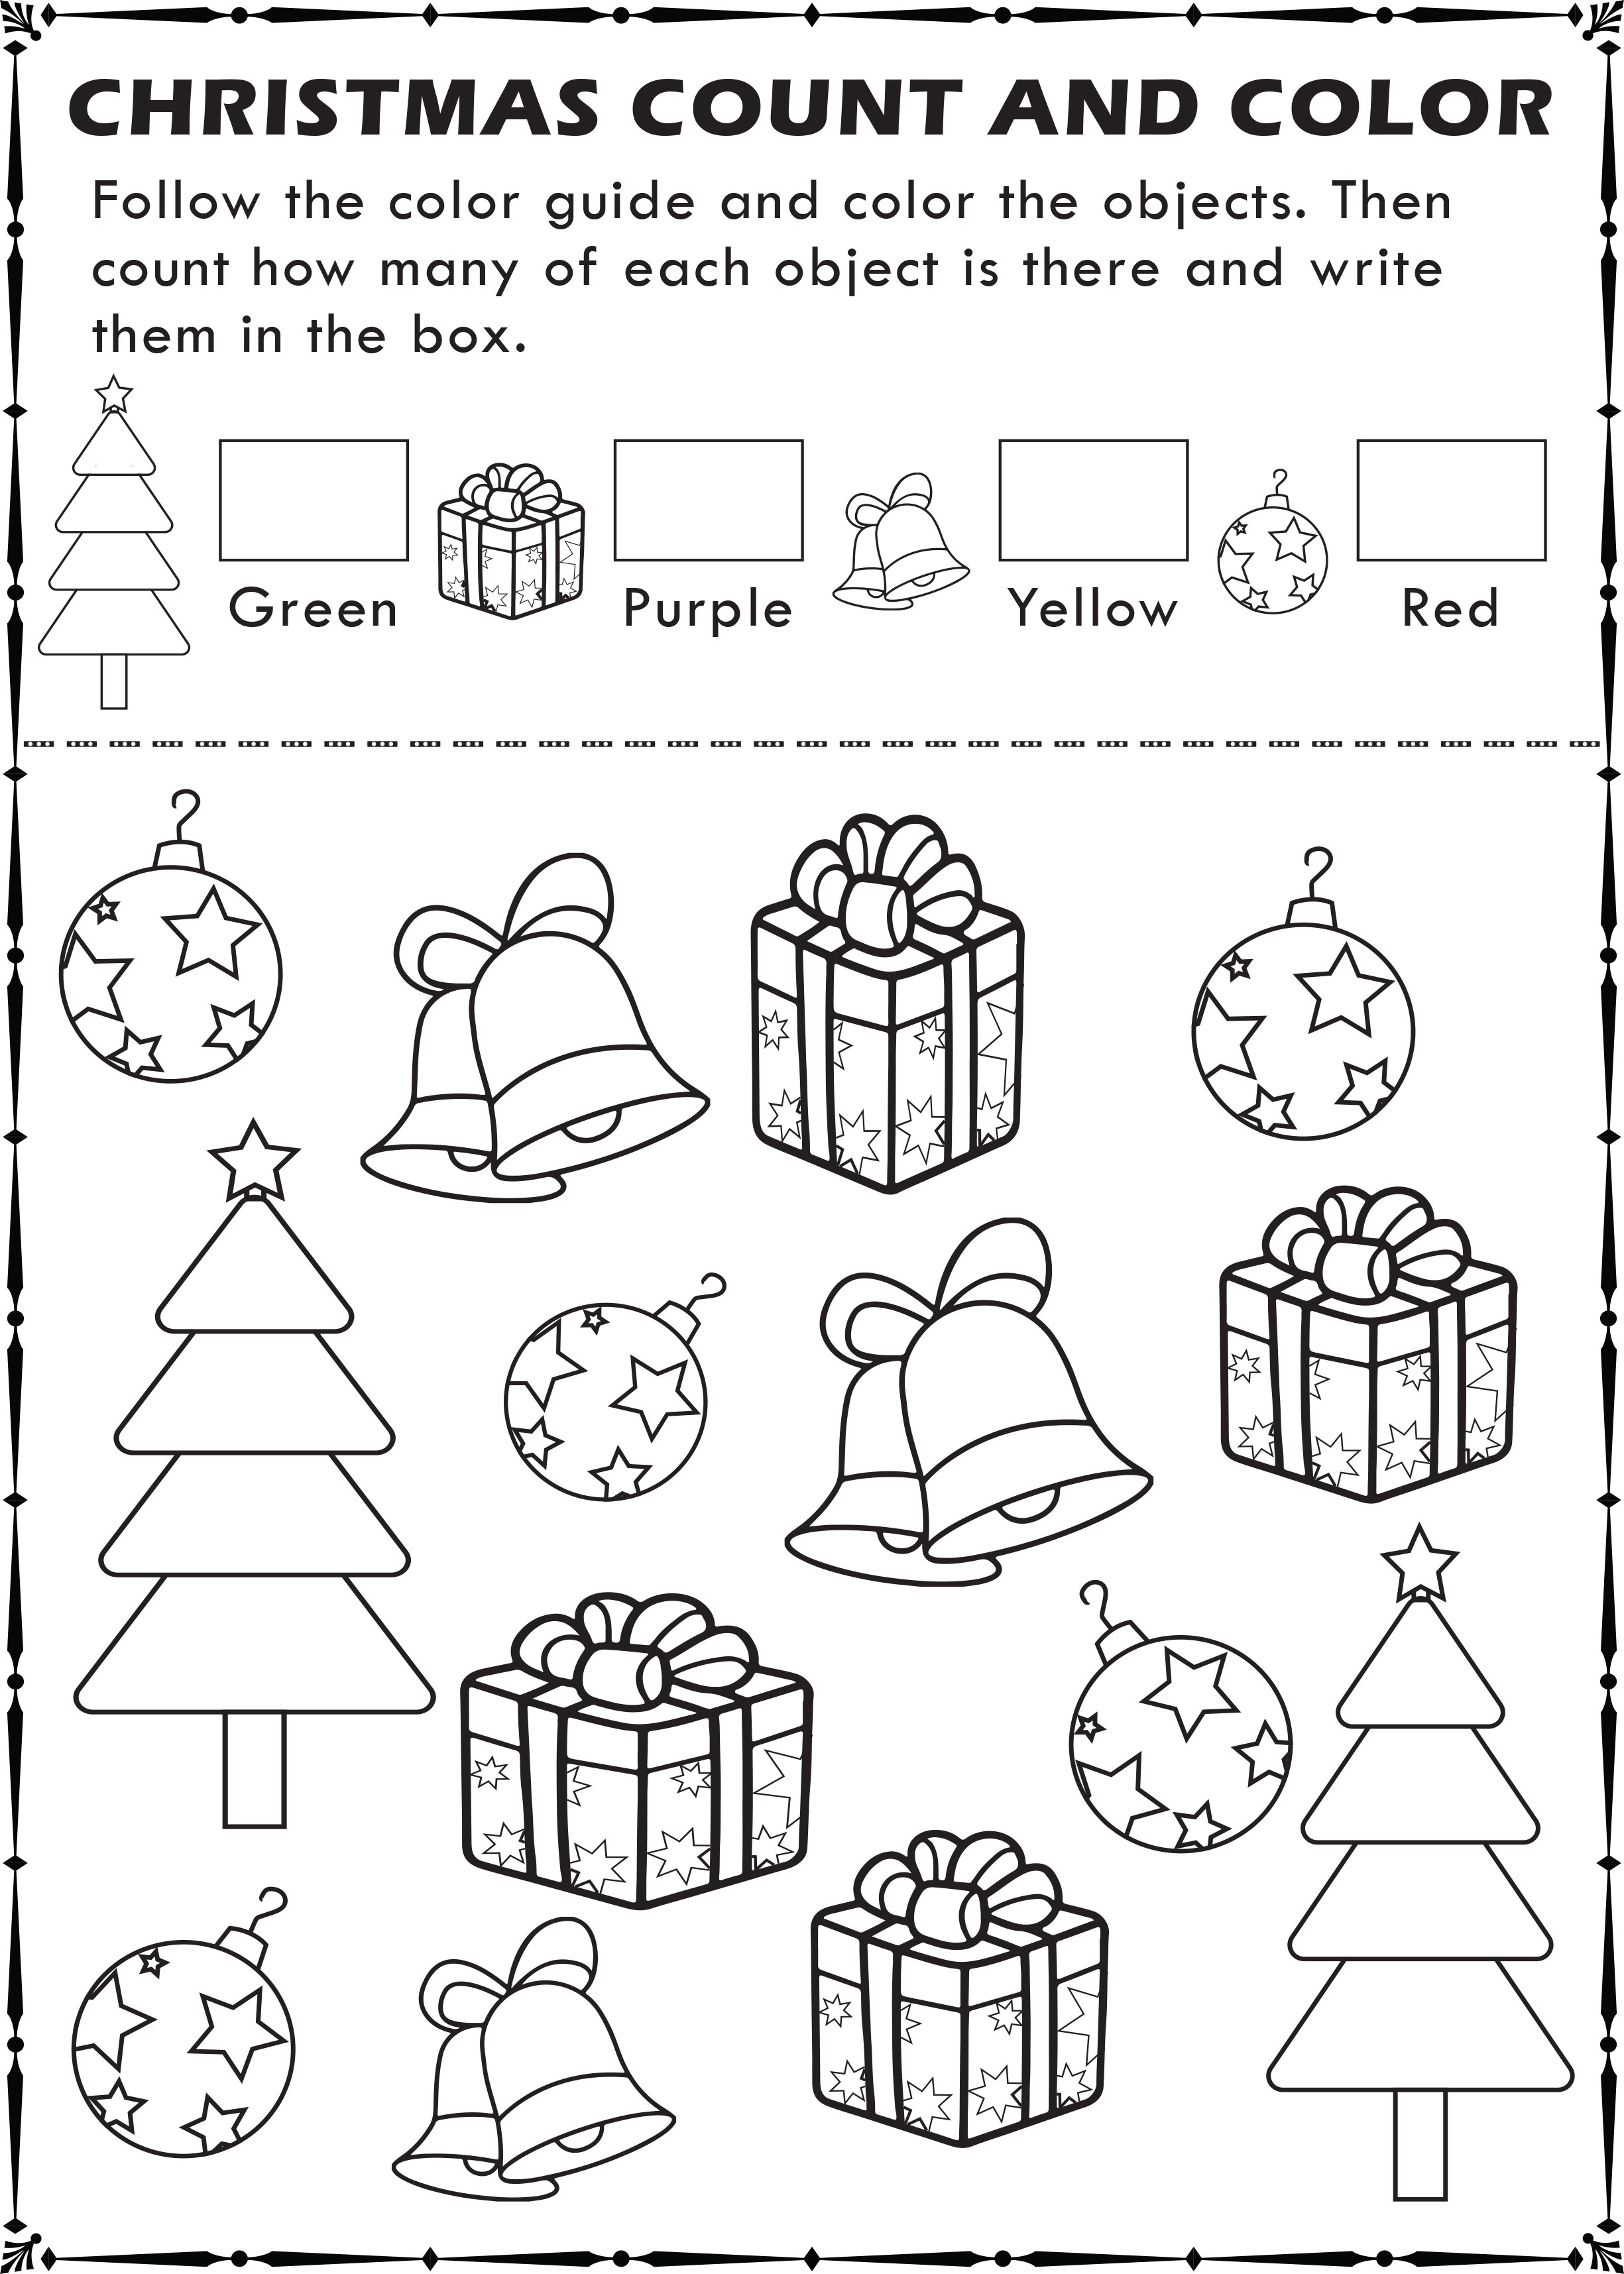 Free Printable Christmas I Spy Count And Color Activity Page For Kids